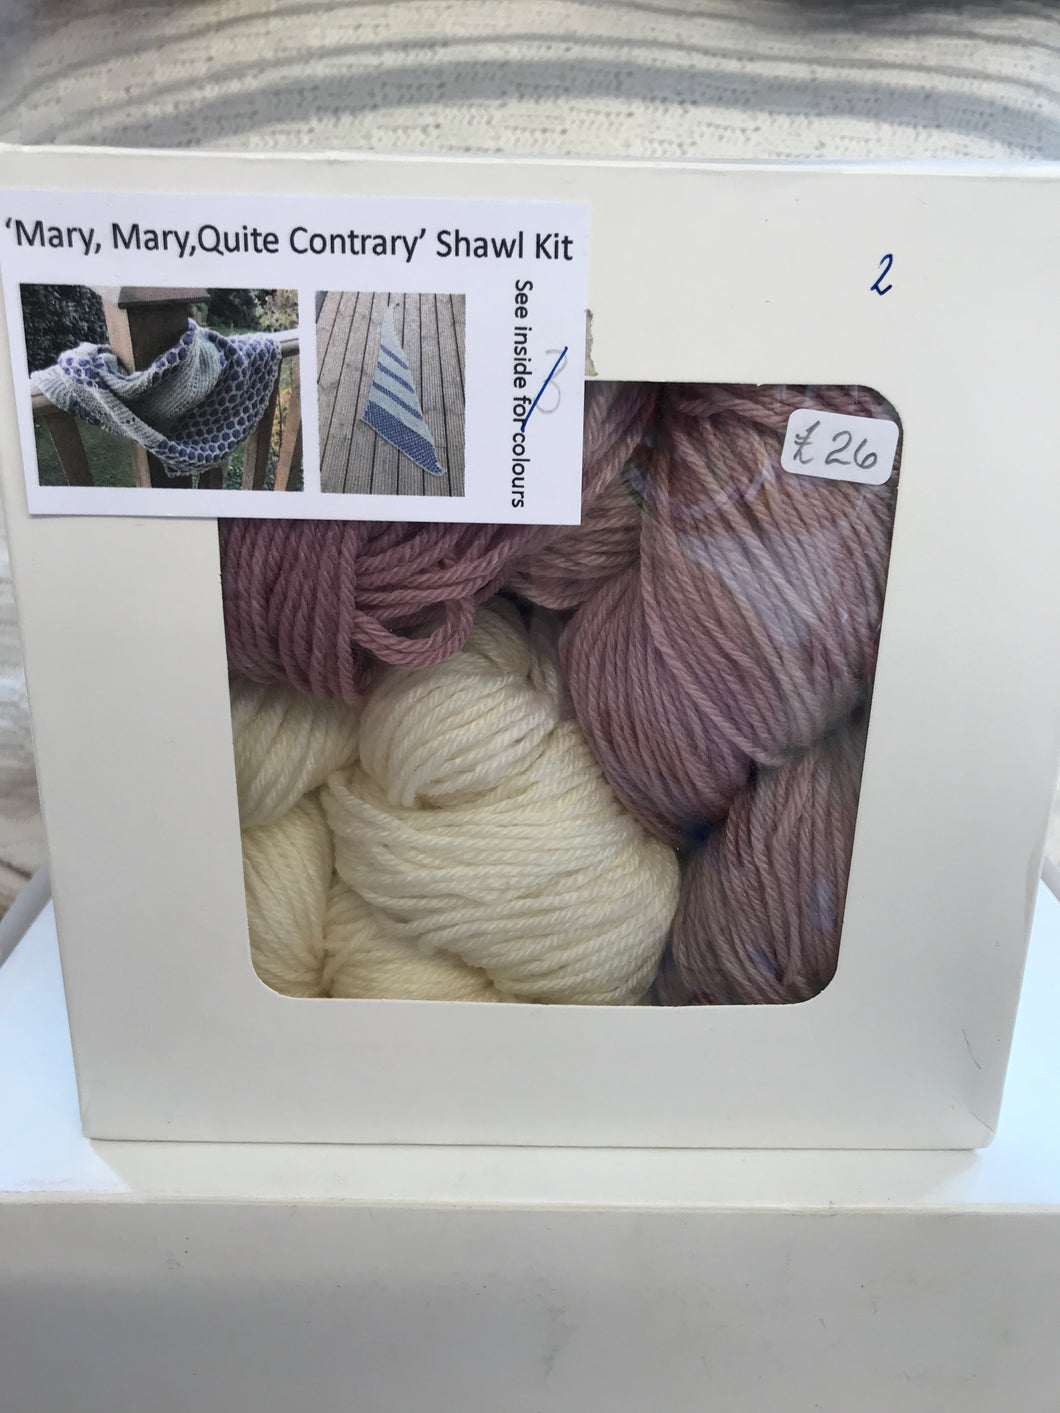 Mary, Mary, Quite Contrary Shawl Kit number 2